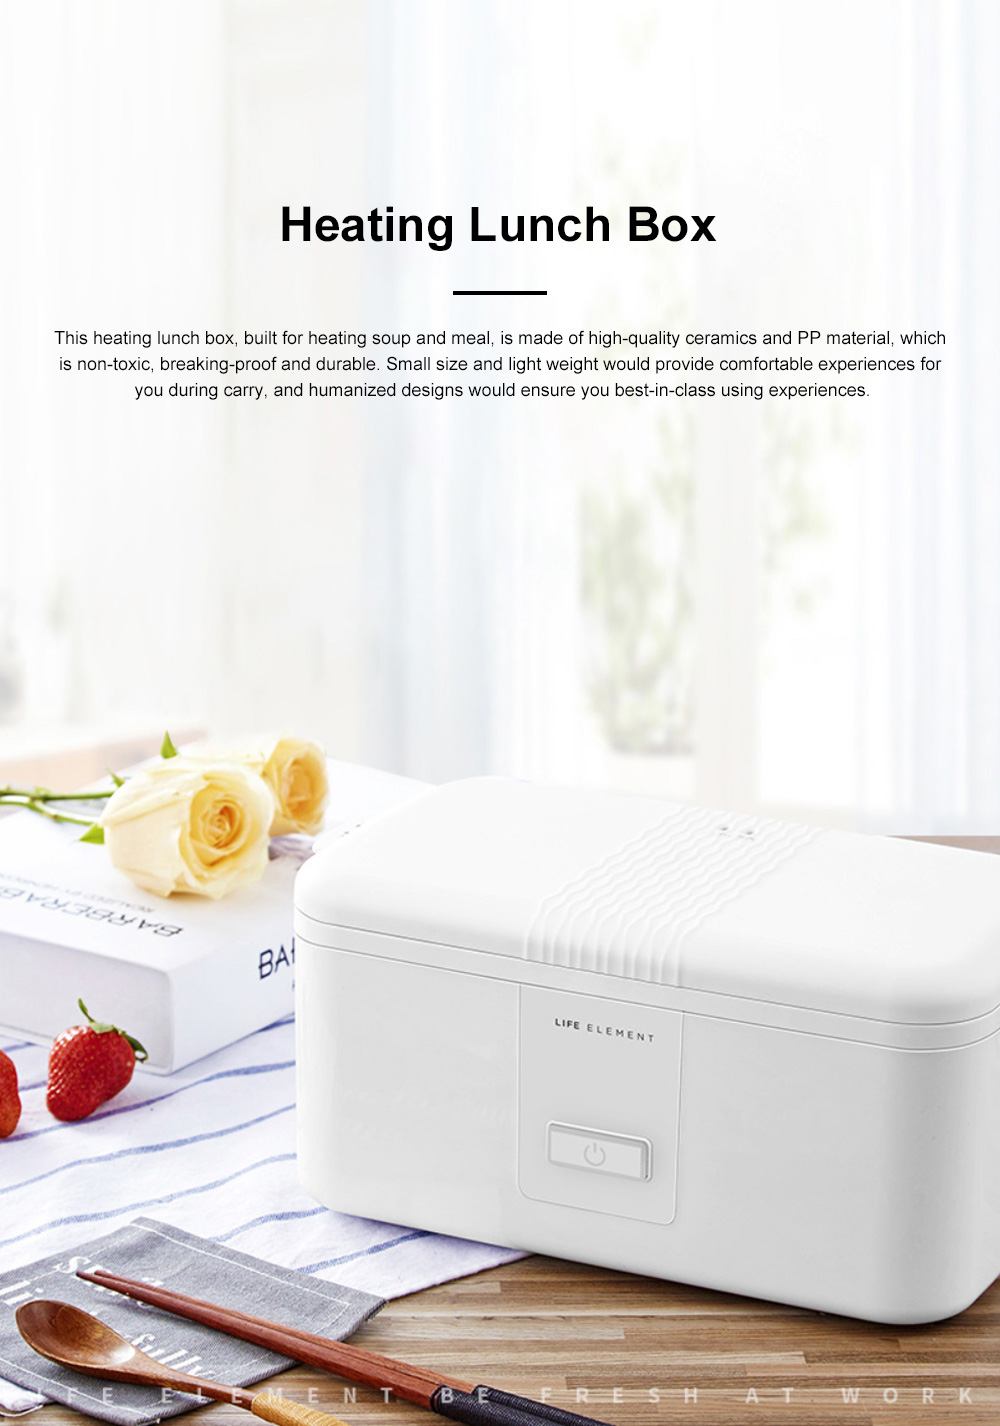 Portable Heat Preservation Electric Cooker with Double Ceramics Bowls, Delicate Food-grade PP Material Heating Lunch Box 0